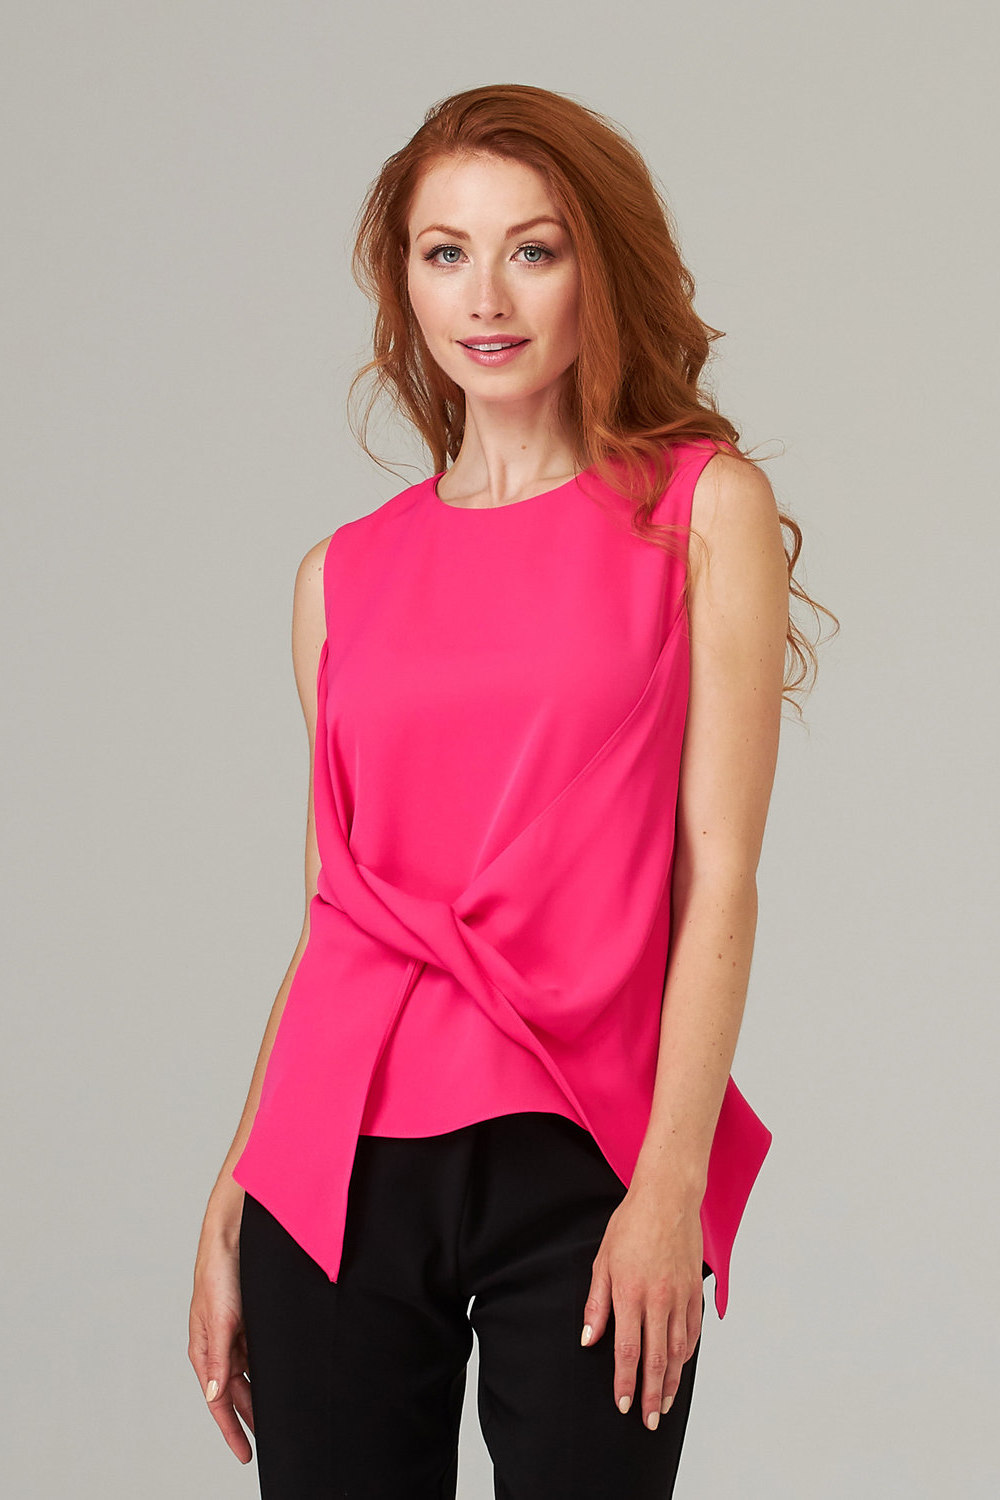 Joseph Ribkoff HYPER PINK Tees & Camis Style 201442